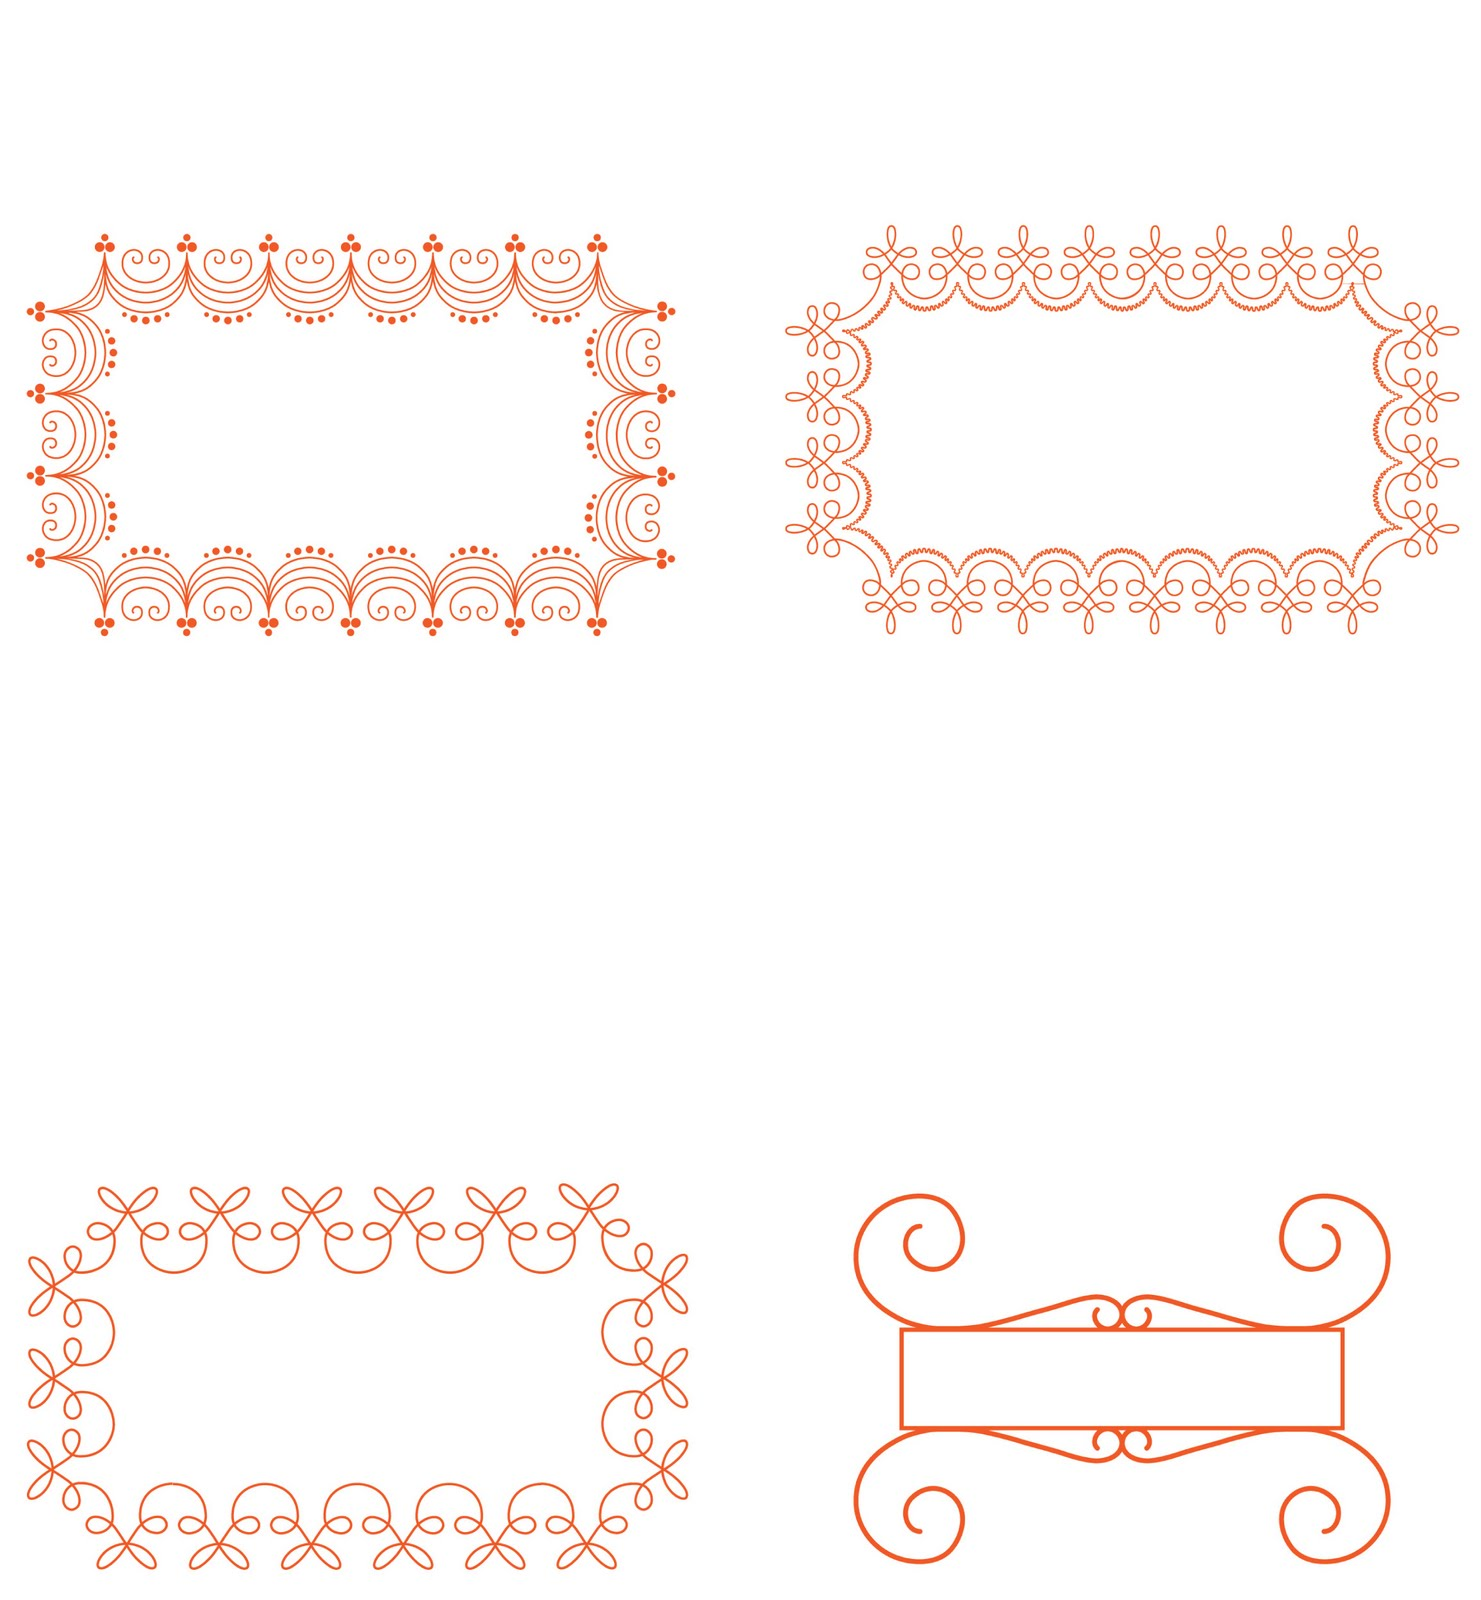 homebodies: Placecard Templates